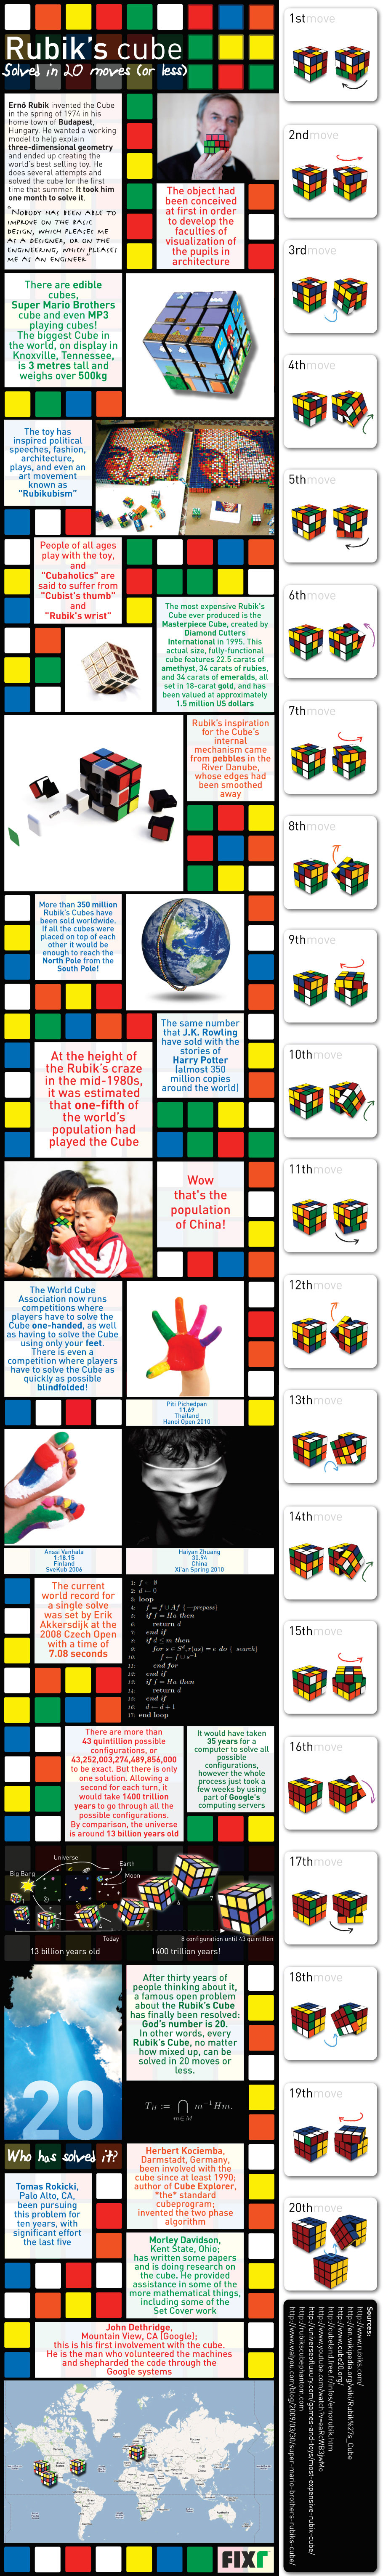 rubik-cube-solved-in-20-movements-or-less